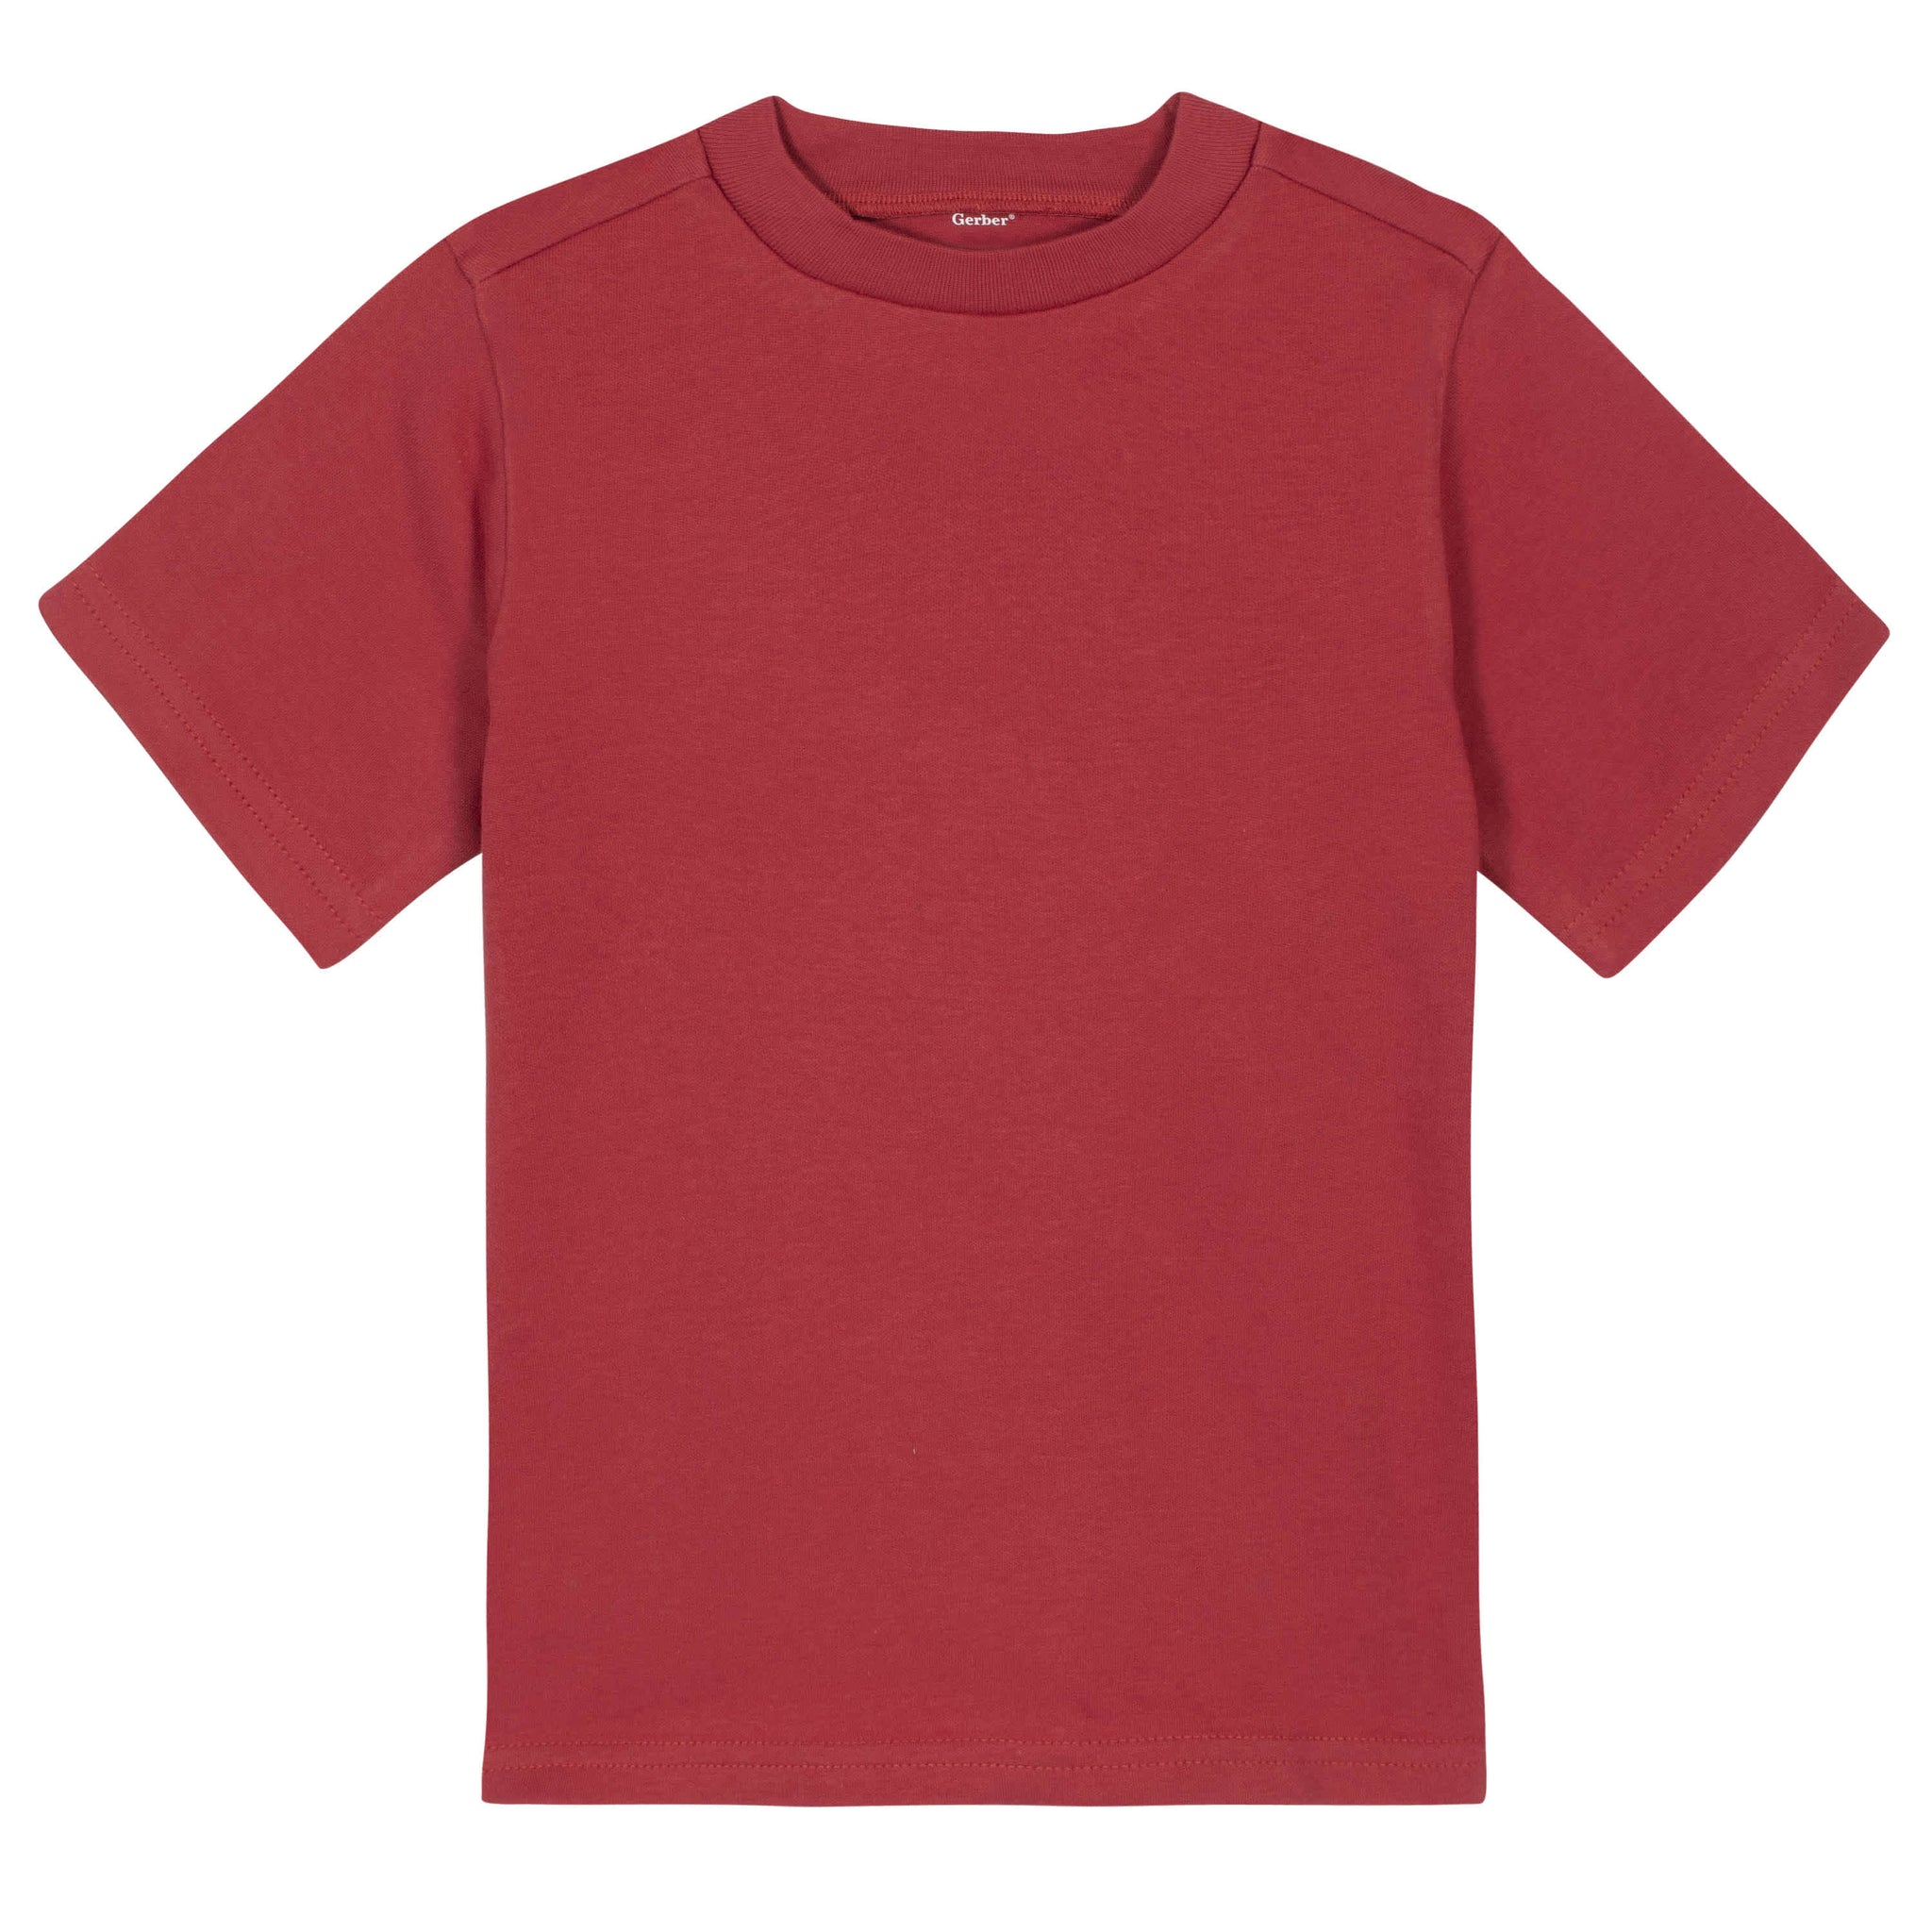 Gerber® Premium Red Short Sleeve Tee Shirt - 10 Colors Available